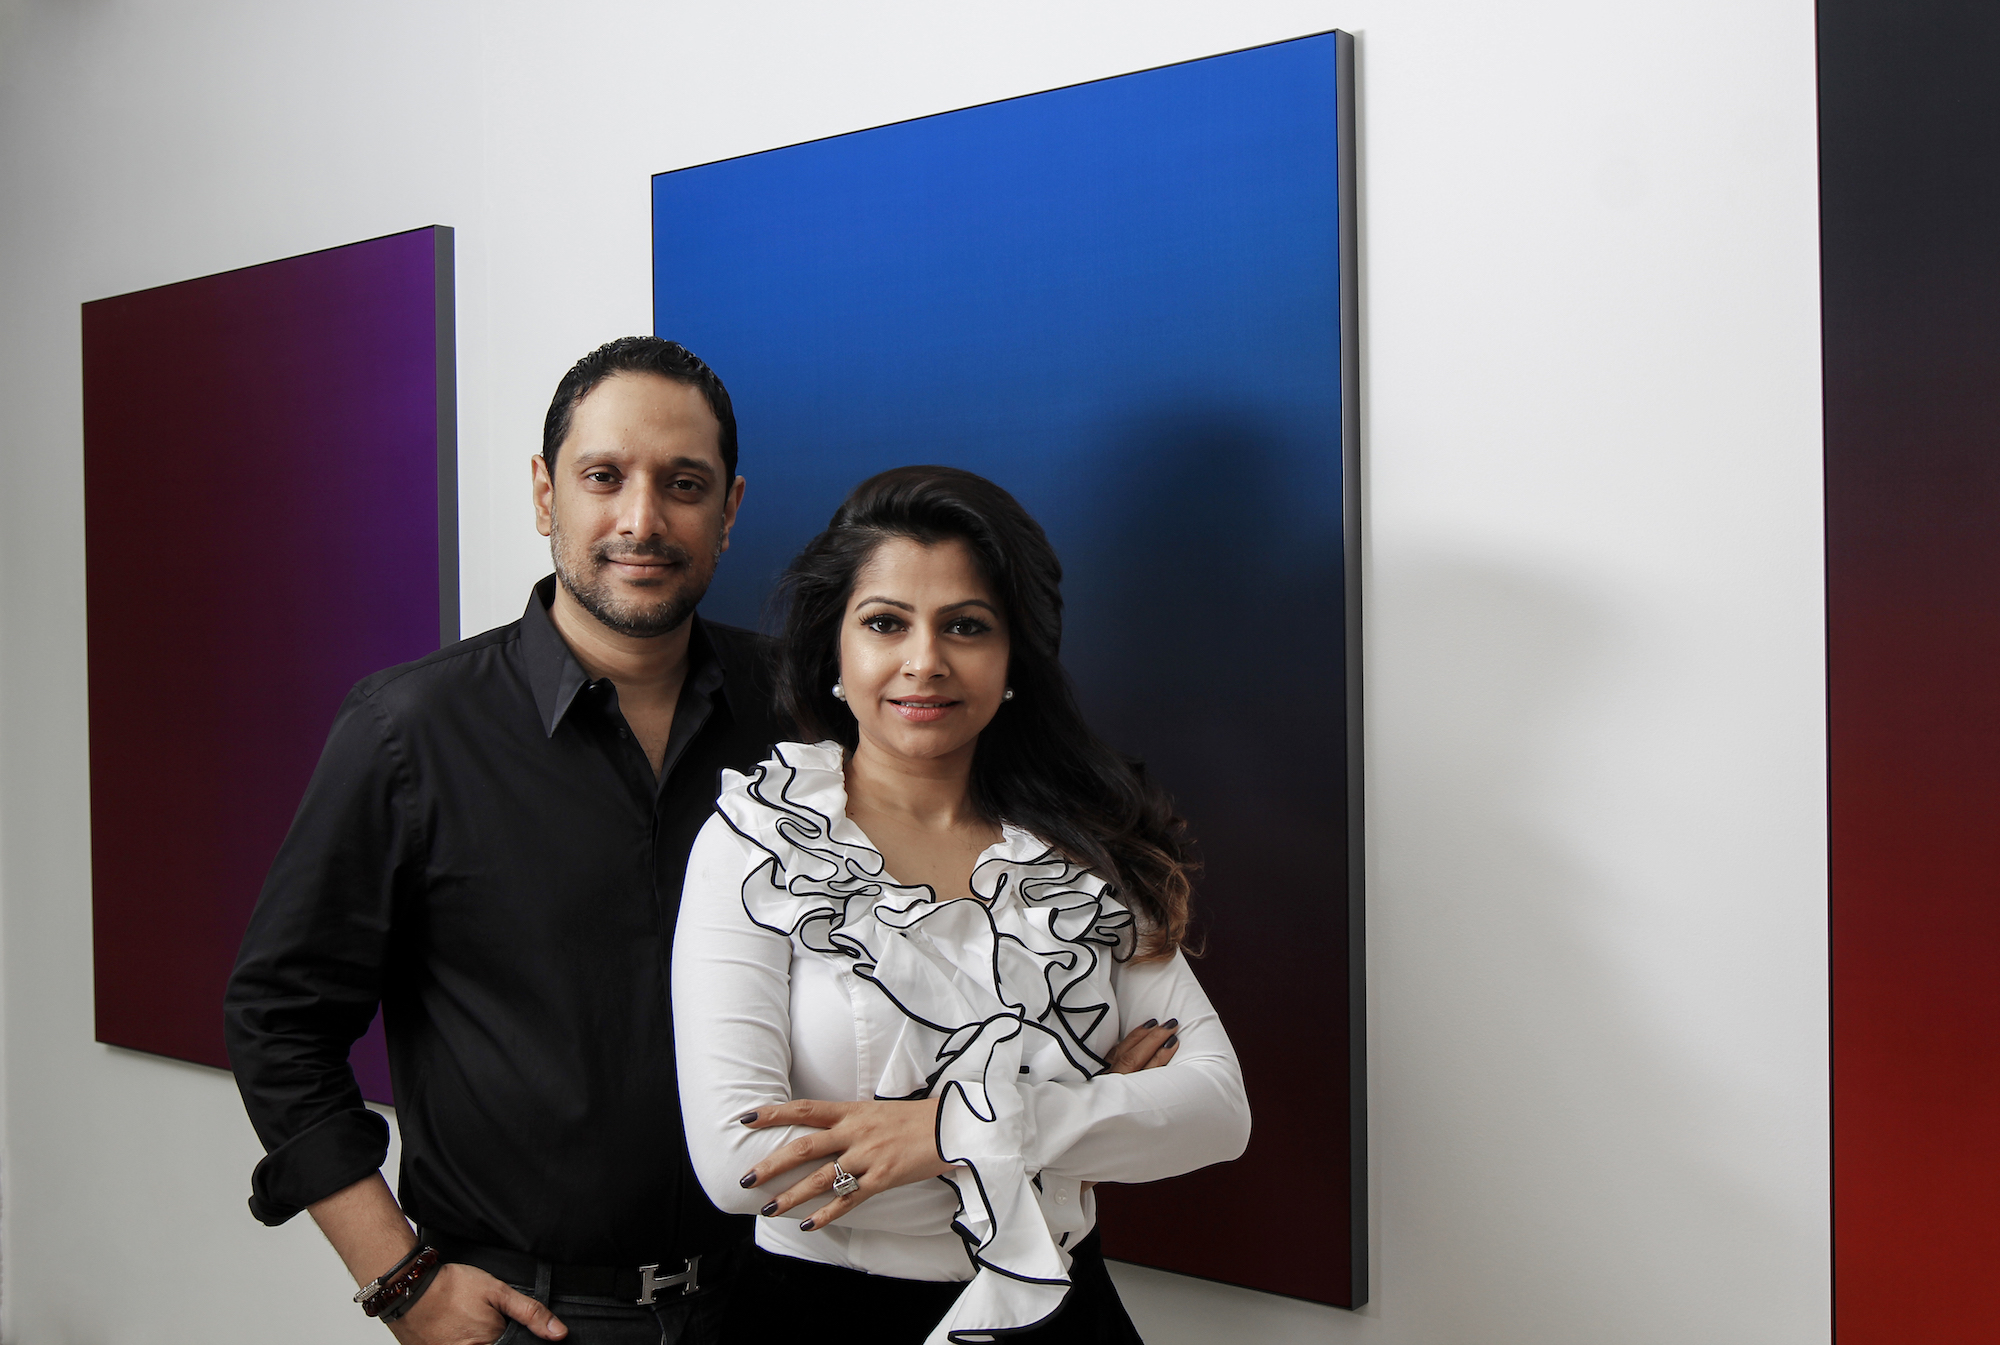 Nadia and Rajeeb Samdani. Photo: Noor Photoface. Courtesy of the Samdani Art Foundation.